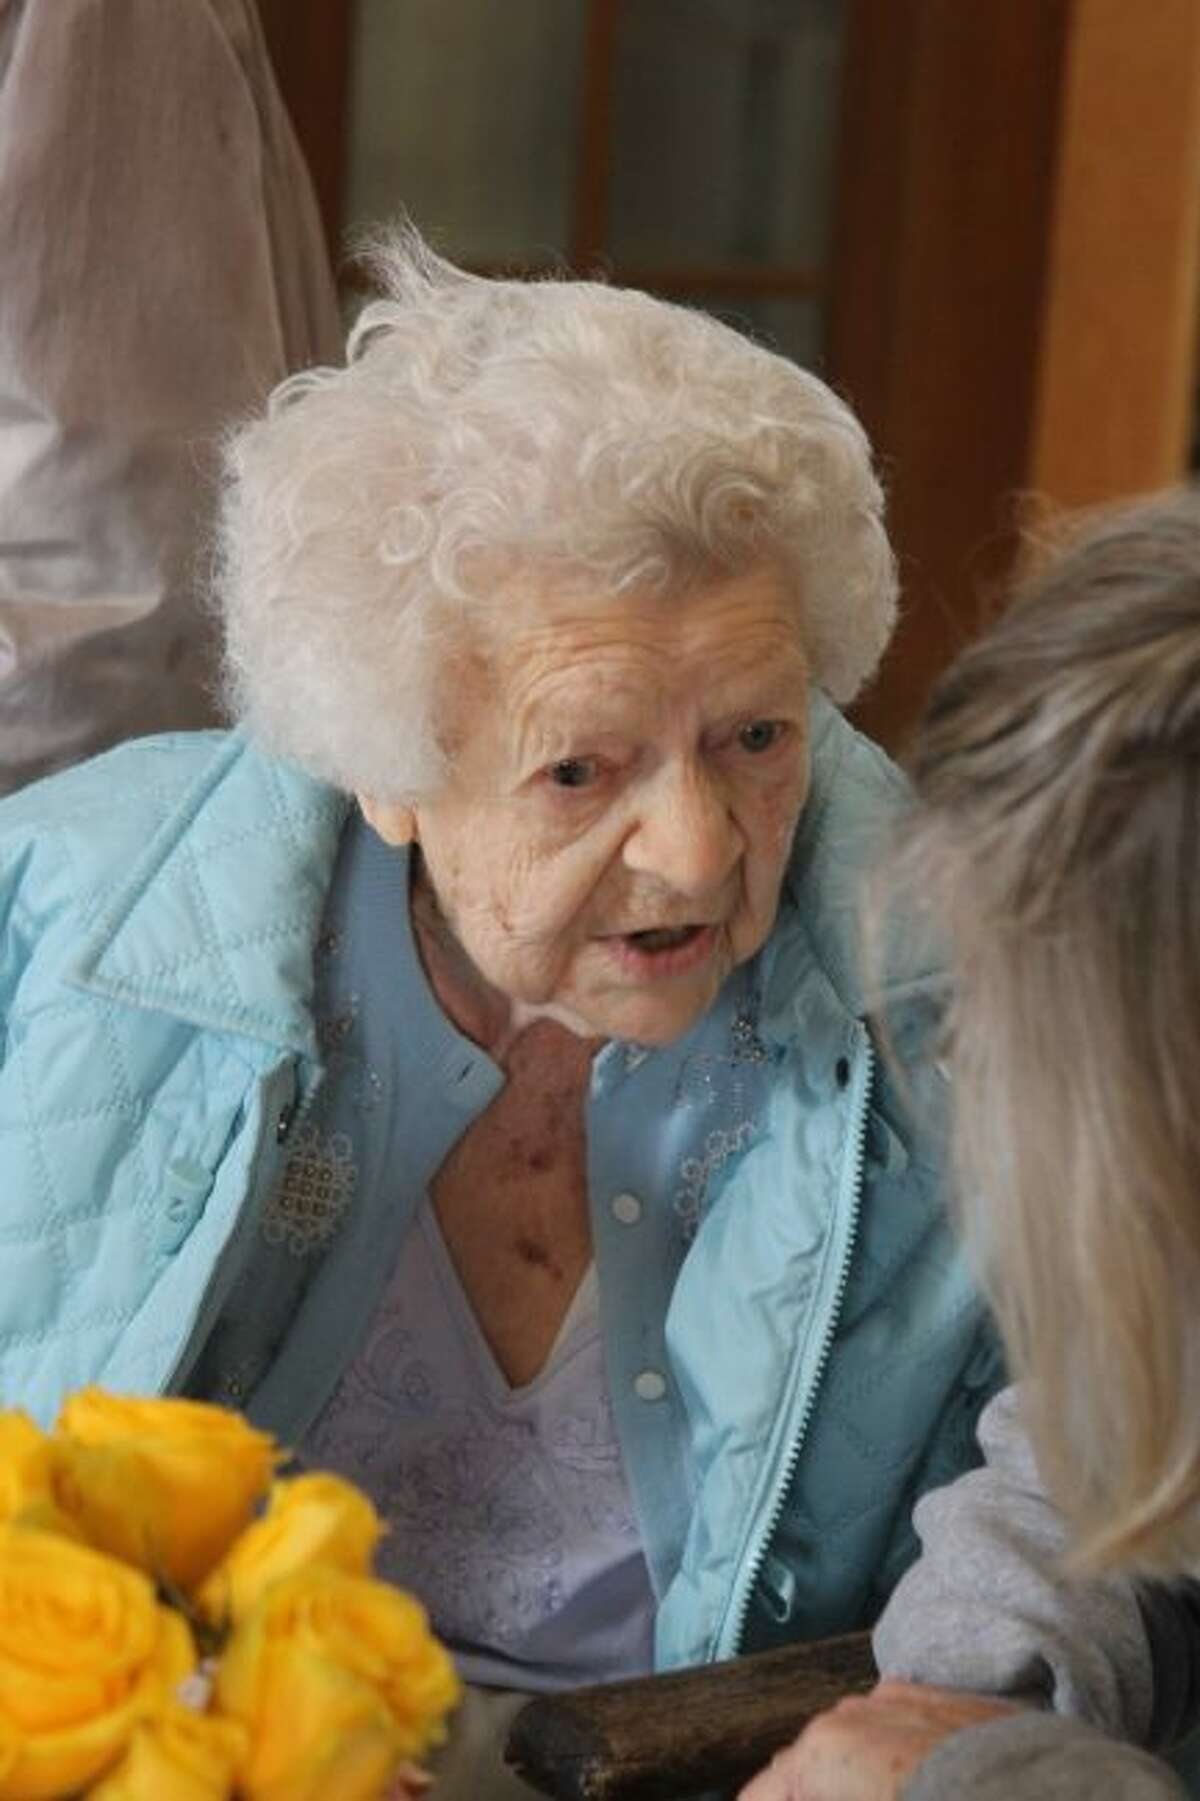 Barbara Blahut is still very active for being 105 years old and carries a great sense of humor which was evident in her talks with family and friends who attended her birthday celebration on Saturday.